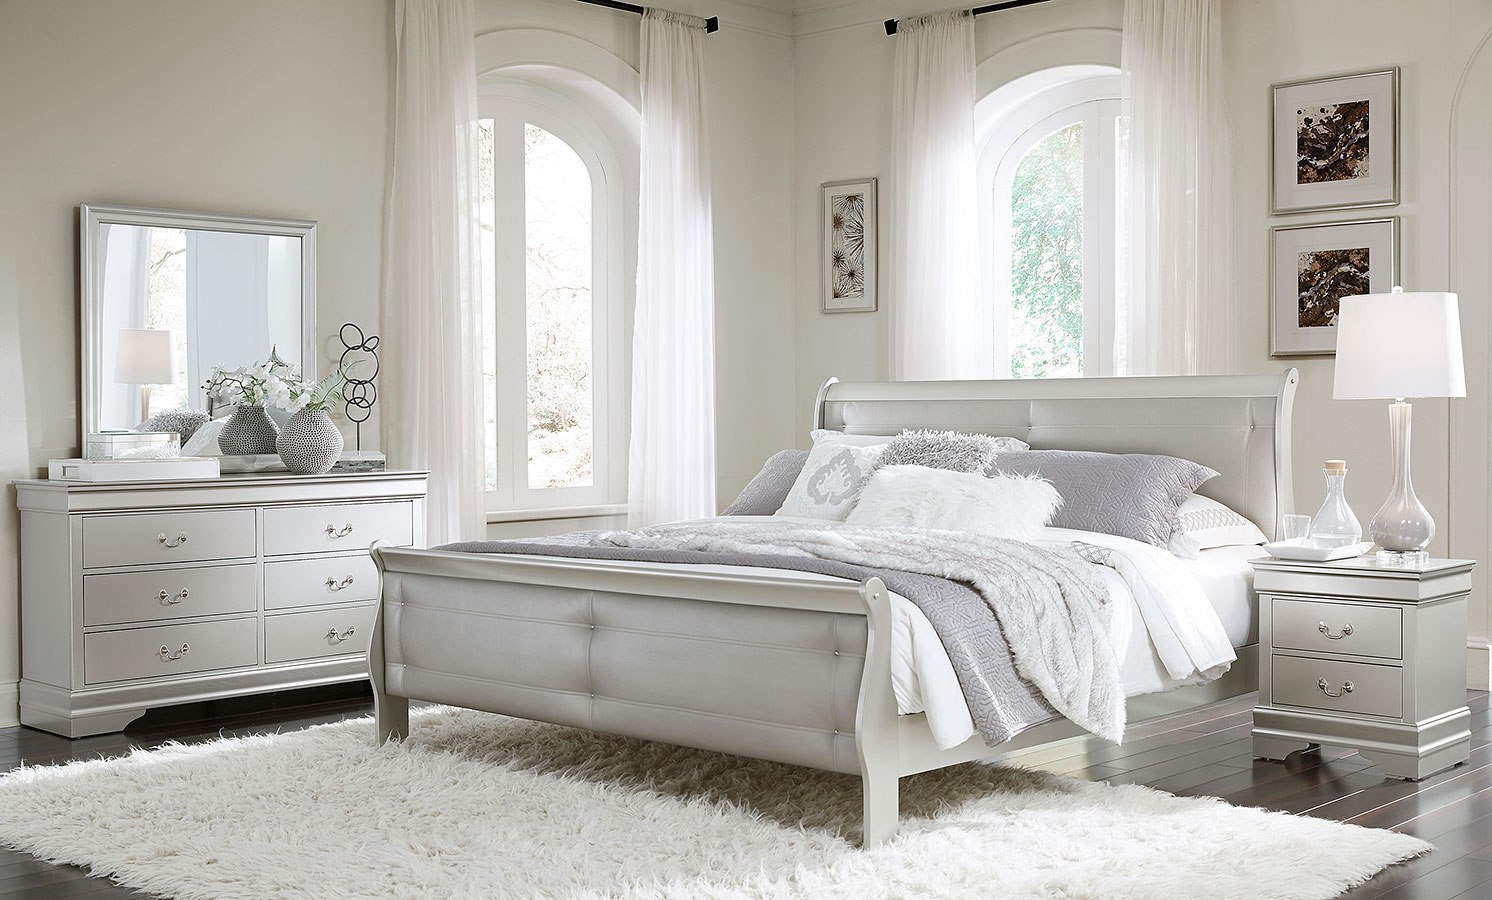 marley sleigh bedroom set (silver)global furniture